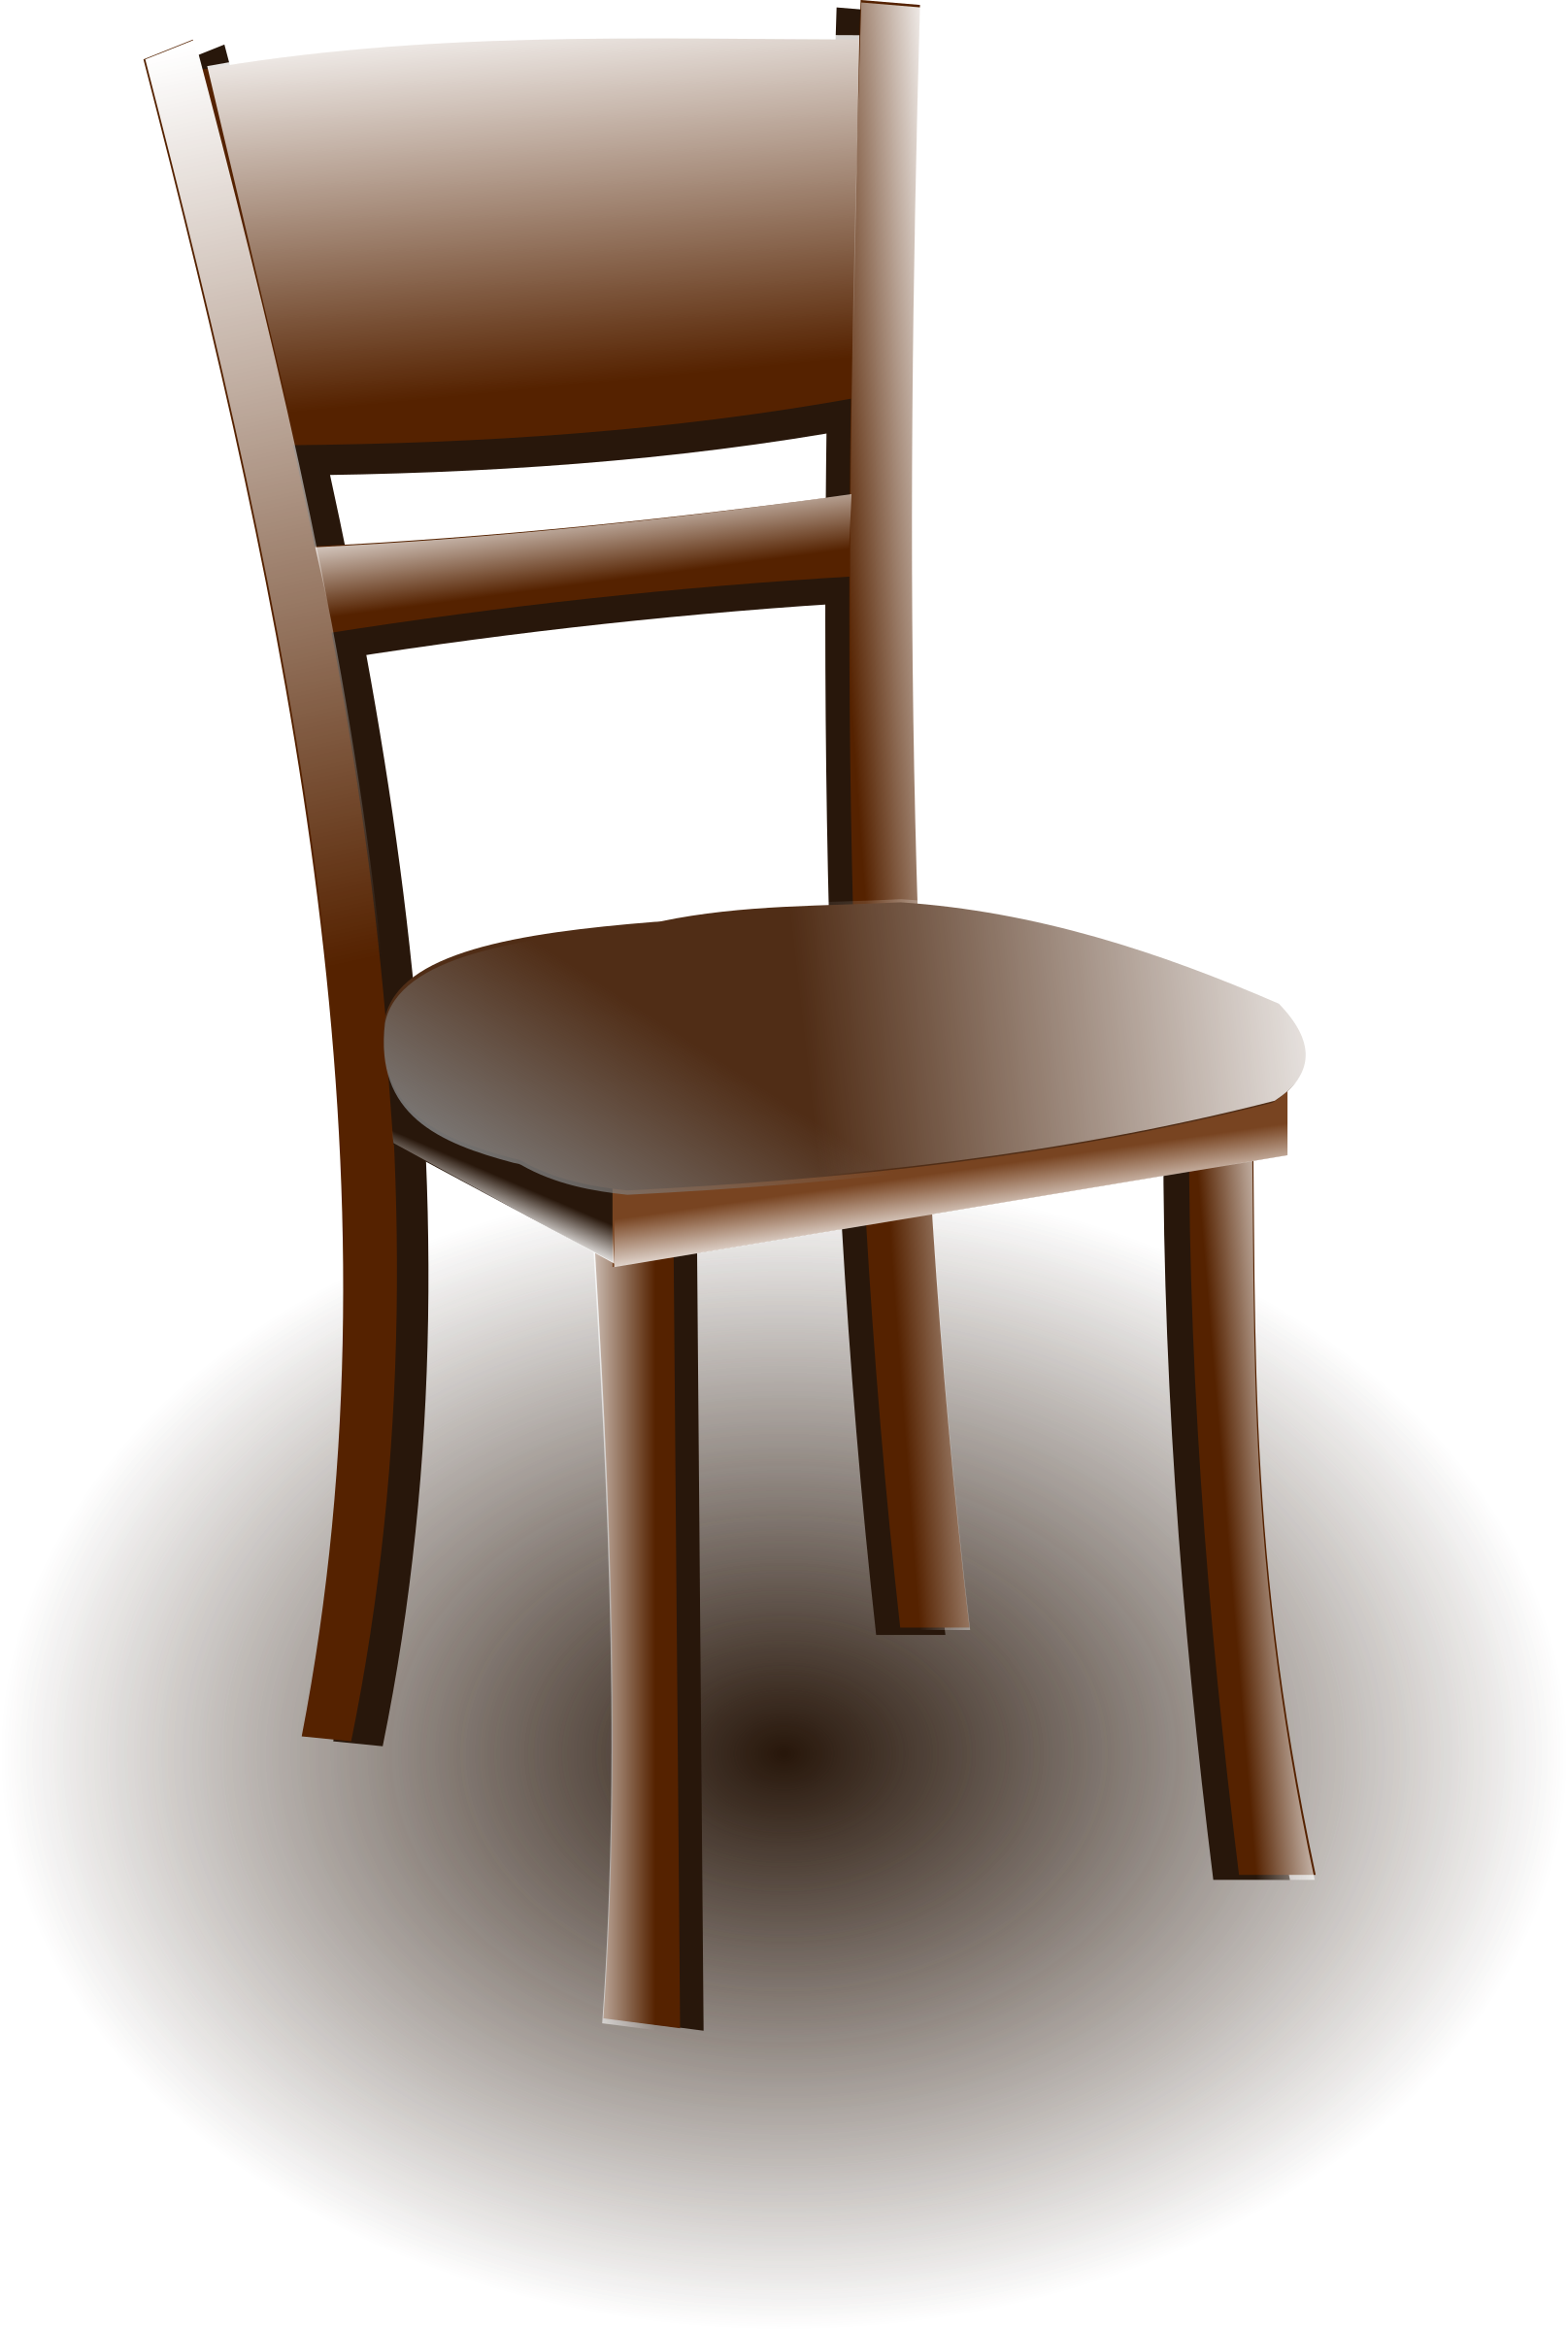 Big image png. Clipart chair wooden chair